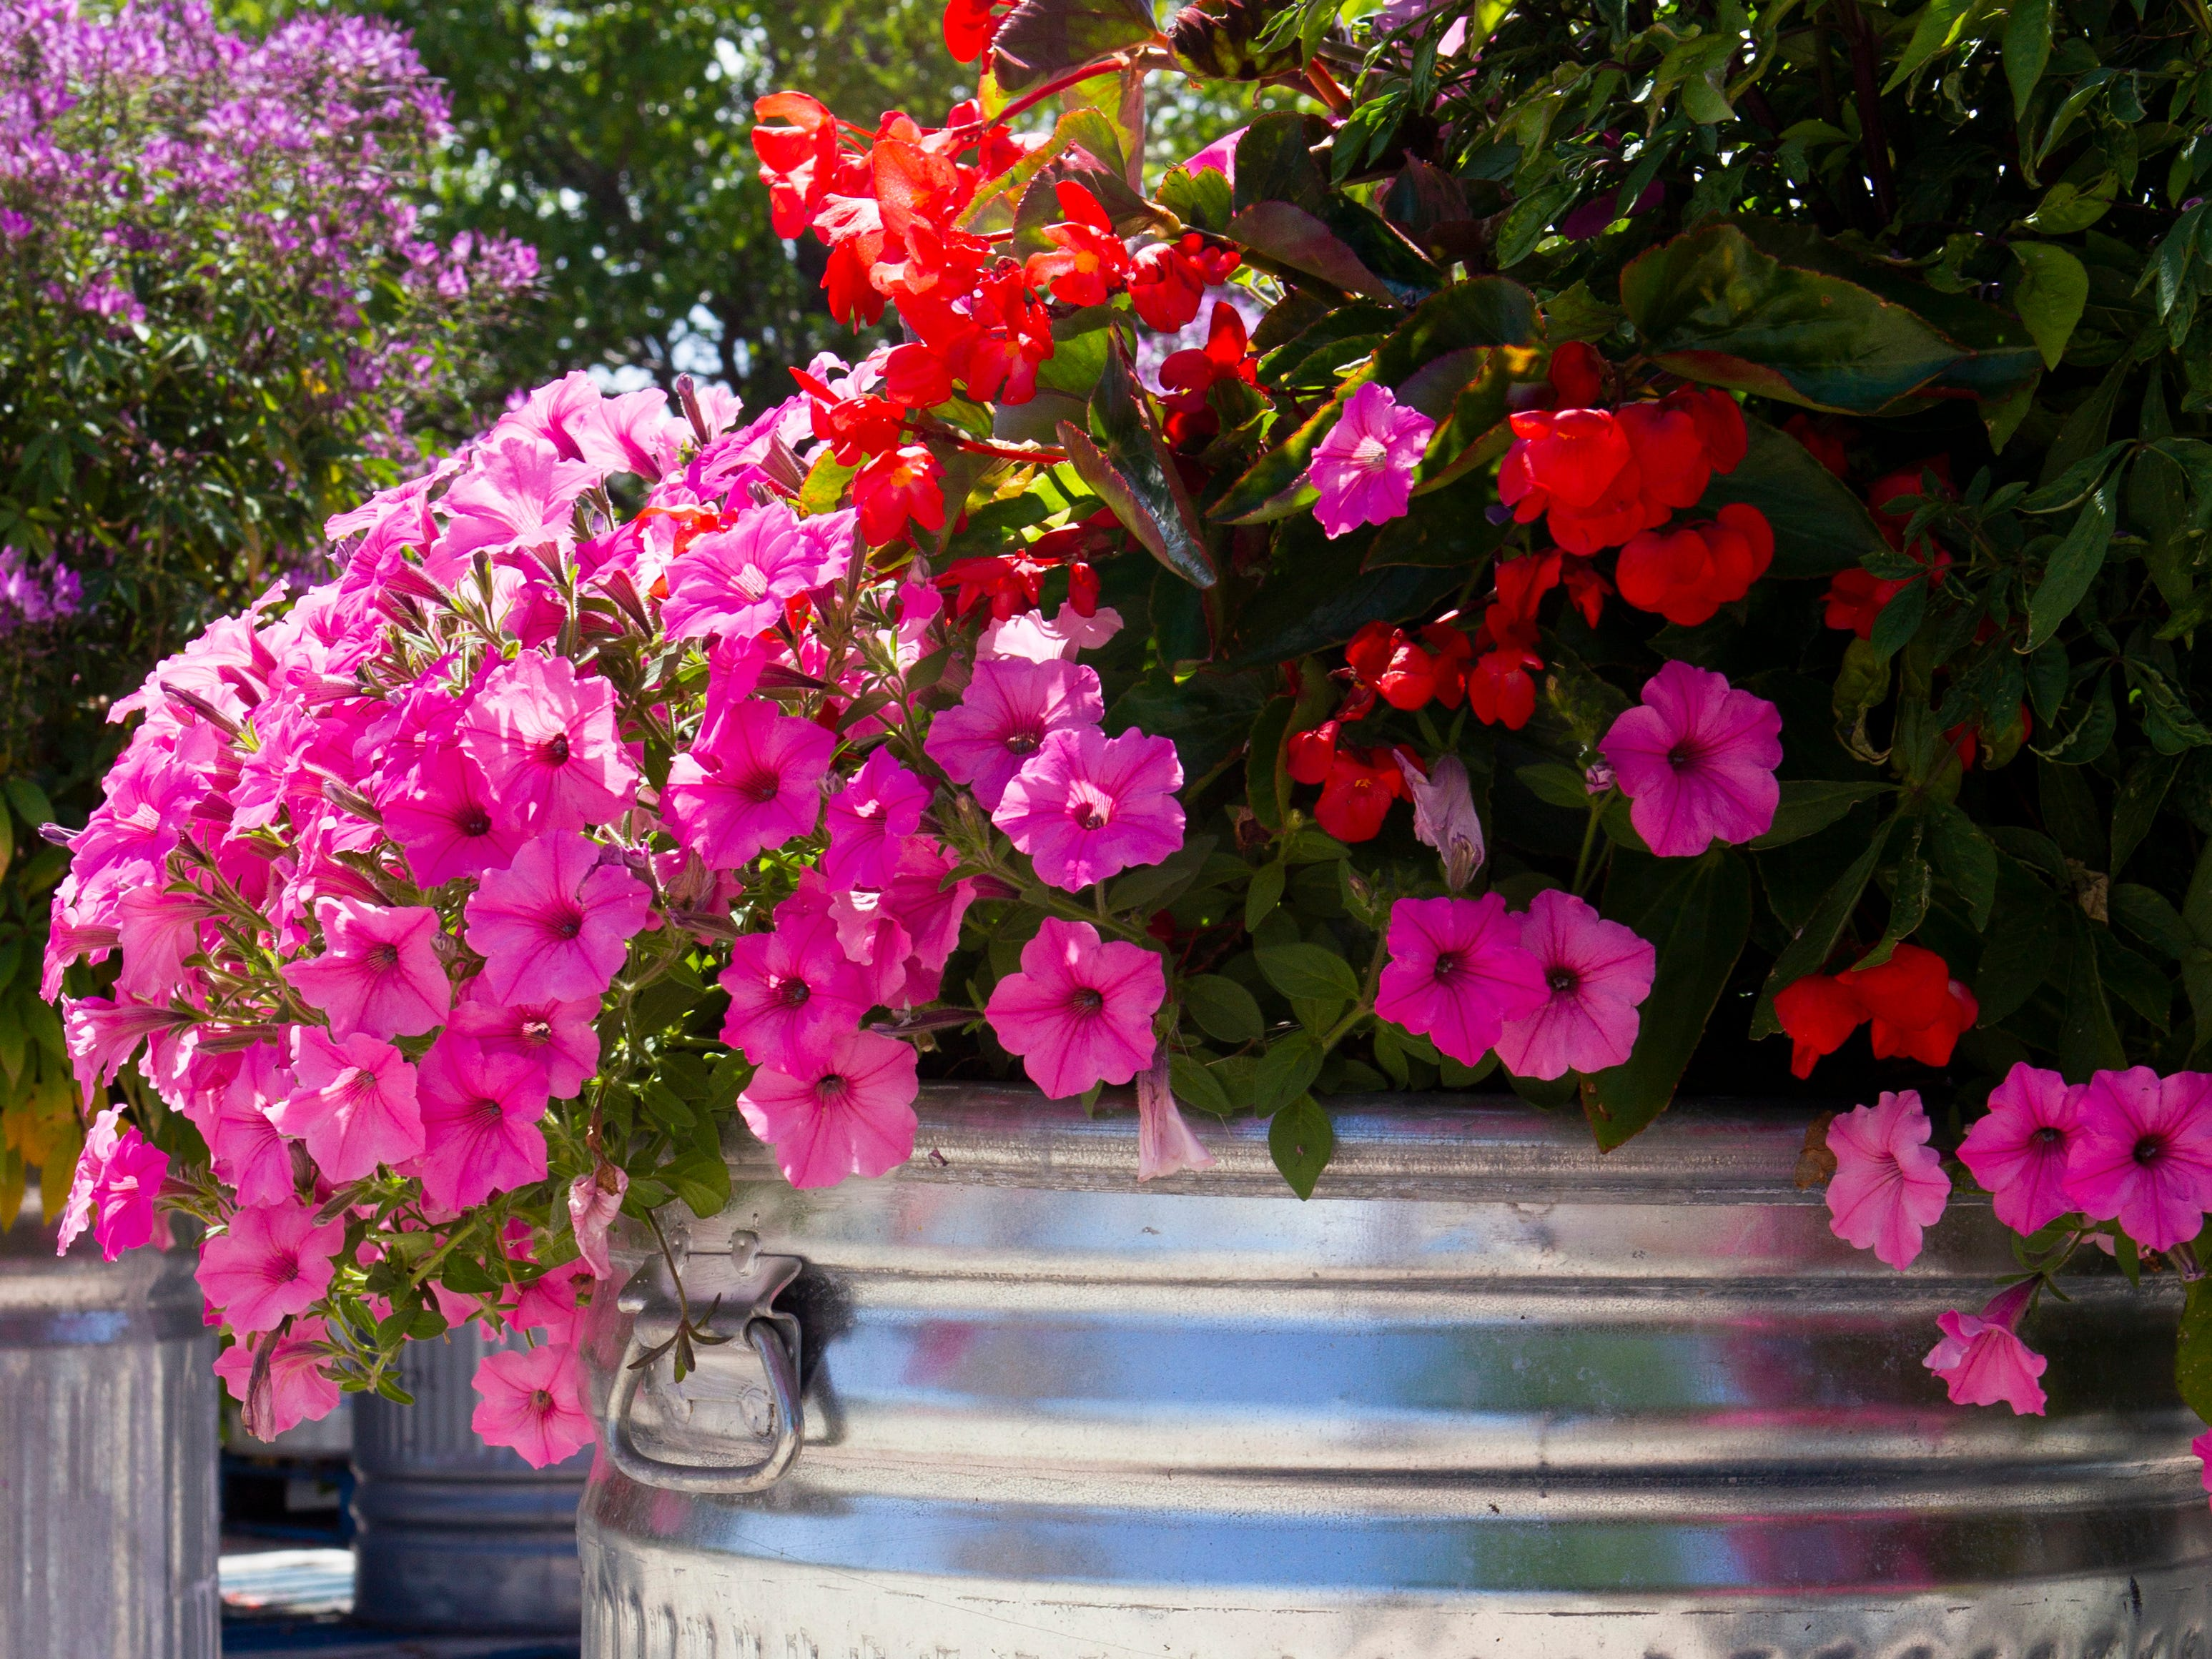 This planter overflows with petunias and dragon wing begonias. Freeland Industries of supplies the Wisconsin State Fair with hundreds of stock tanks to hold flowers.